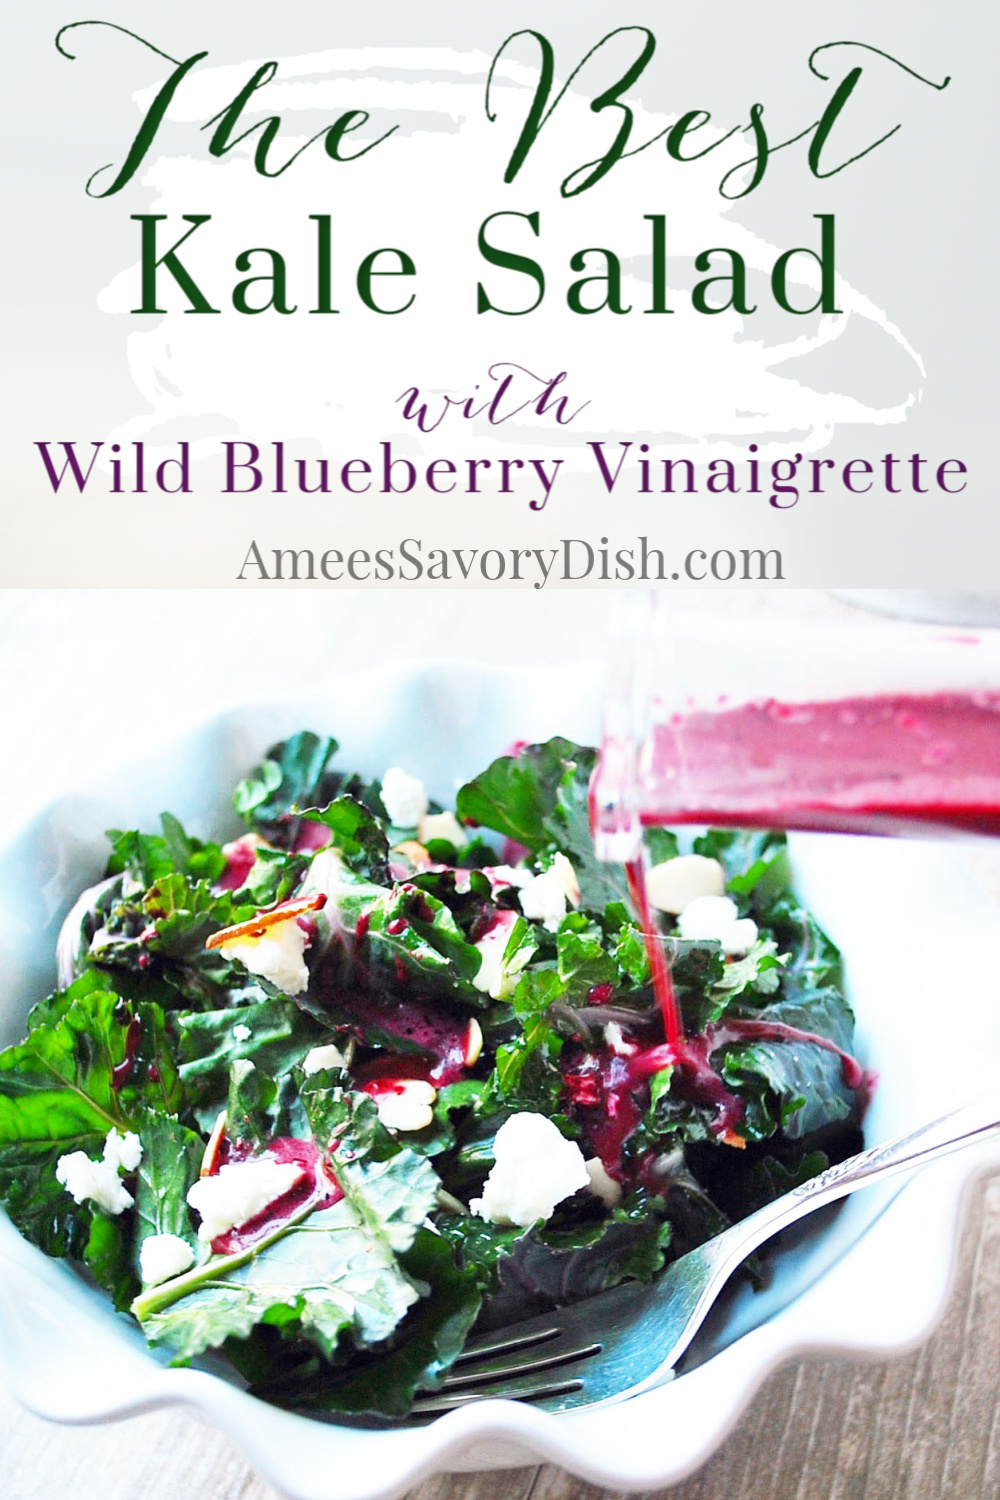 A deliciously easy kale superfood salad recipe made with Kalettes, a new hybrid power green, crumbled goat cheese, slivered almonds with a homemade wild blueberry vinaigrette dressing. #kalesalad #superfoodsalad #kalerecipe #salad via @Ameecooks